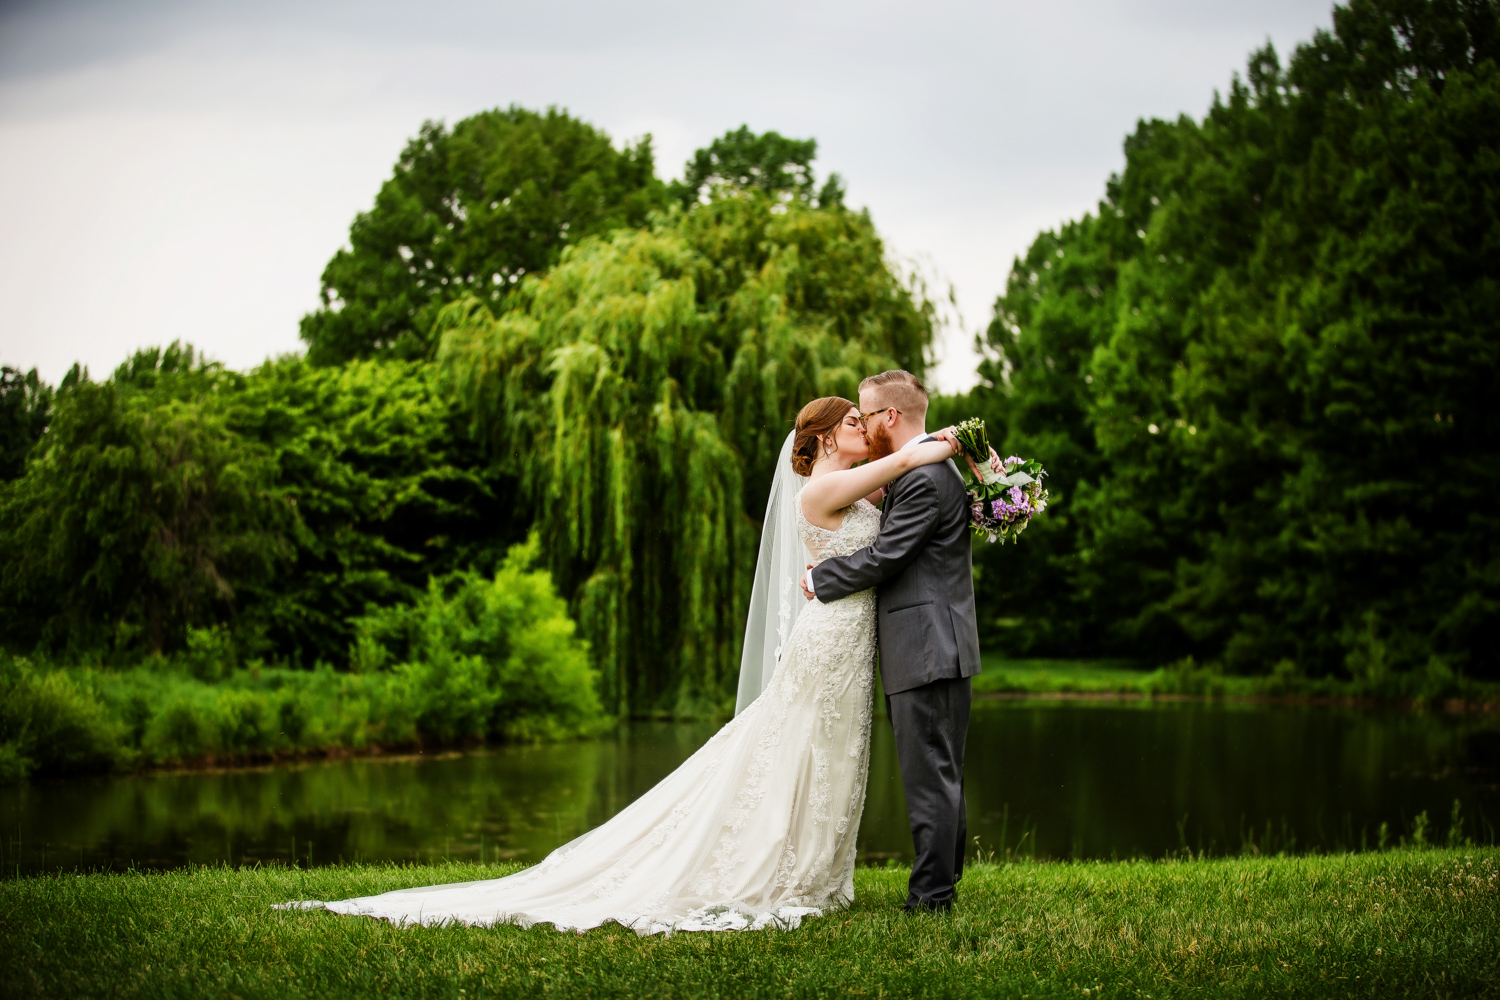 University of Illinois Arboretum Wedding